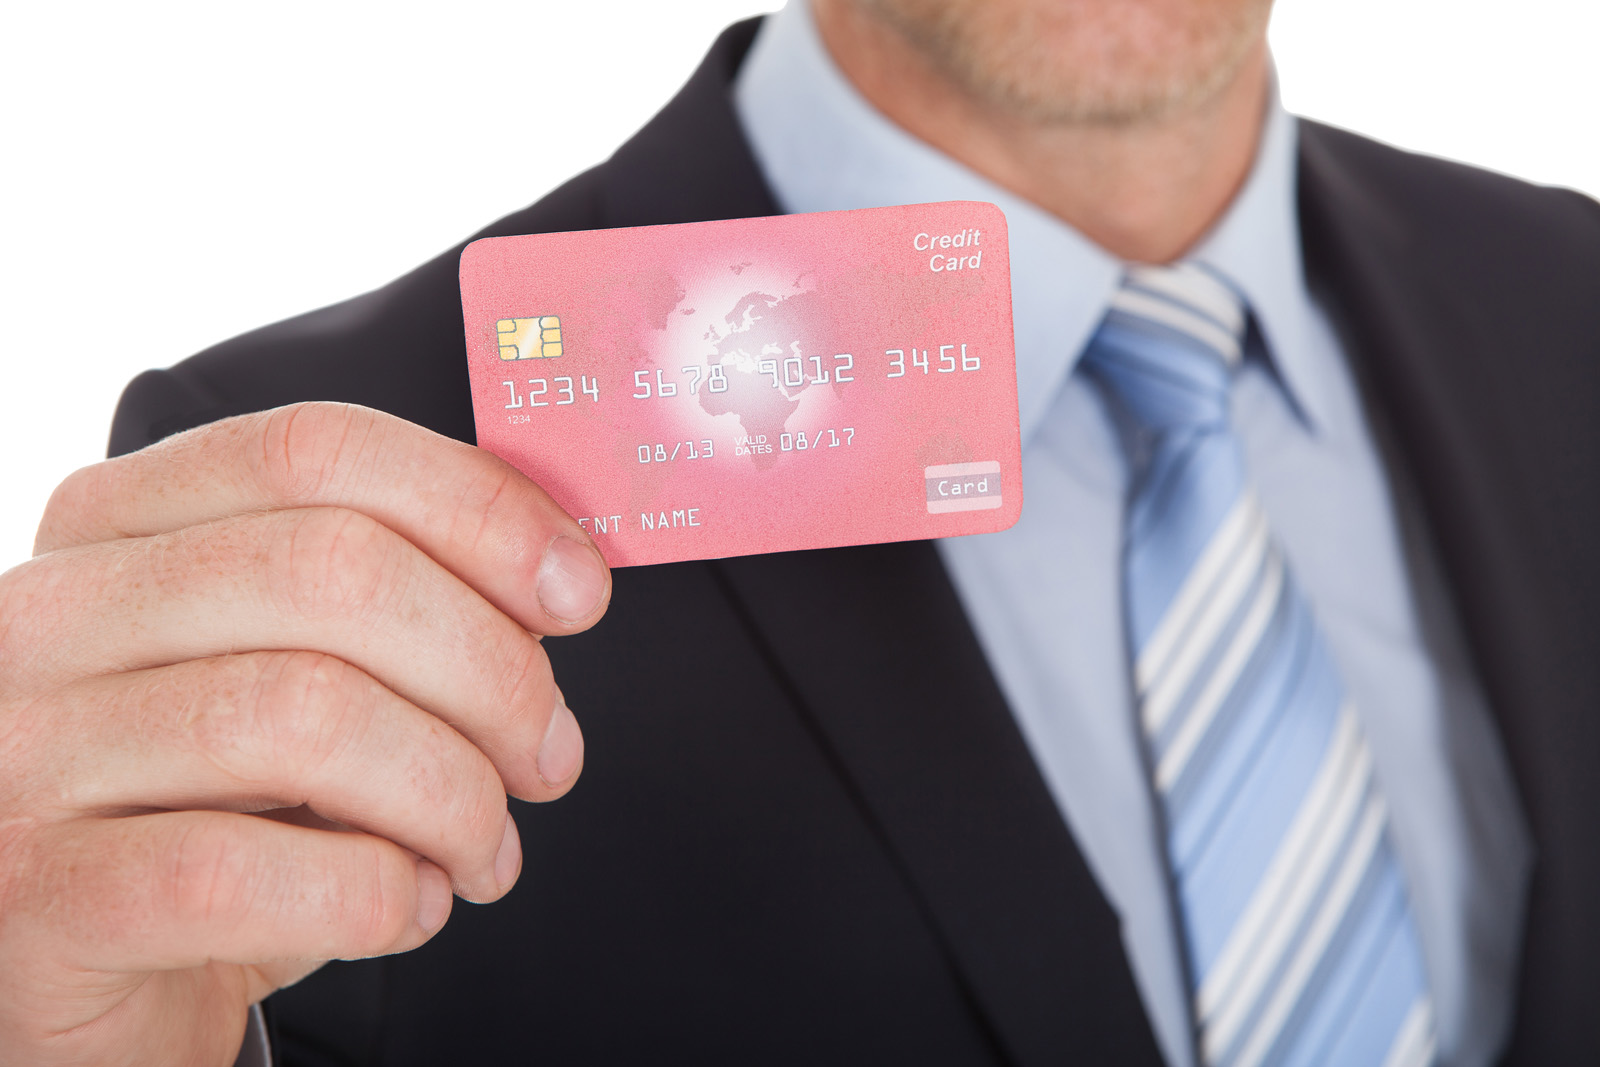 Holding bank card 51223